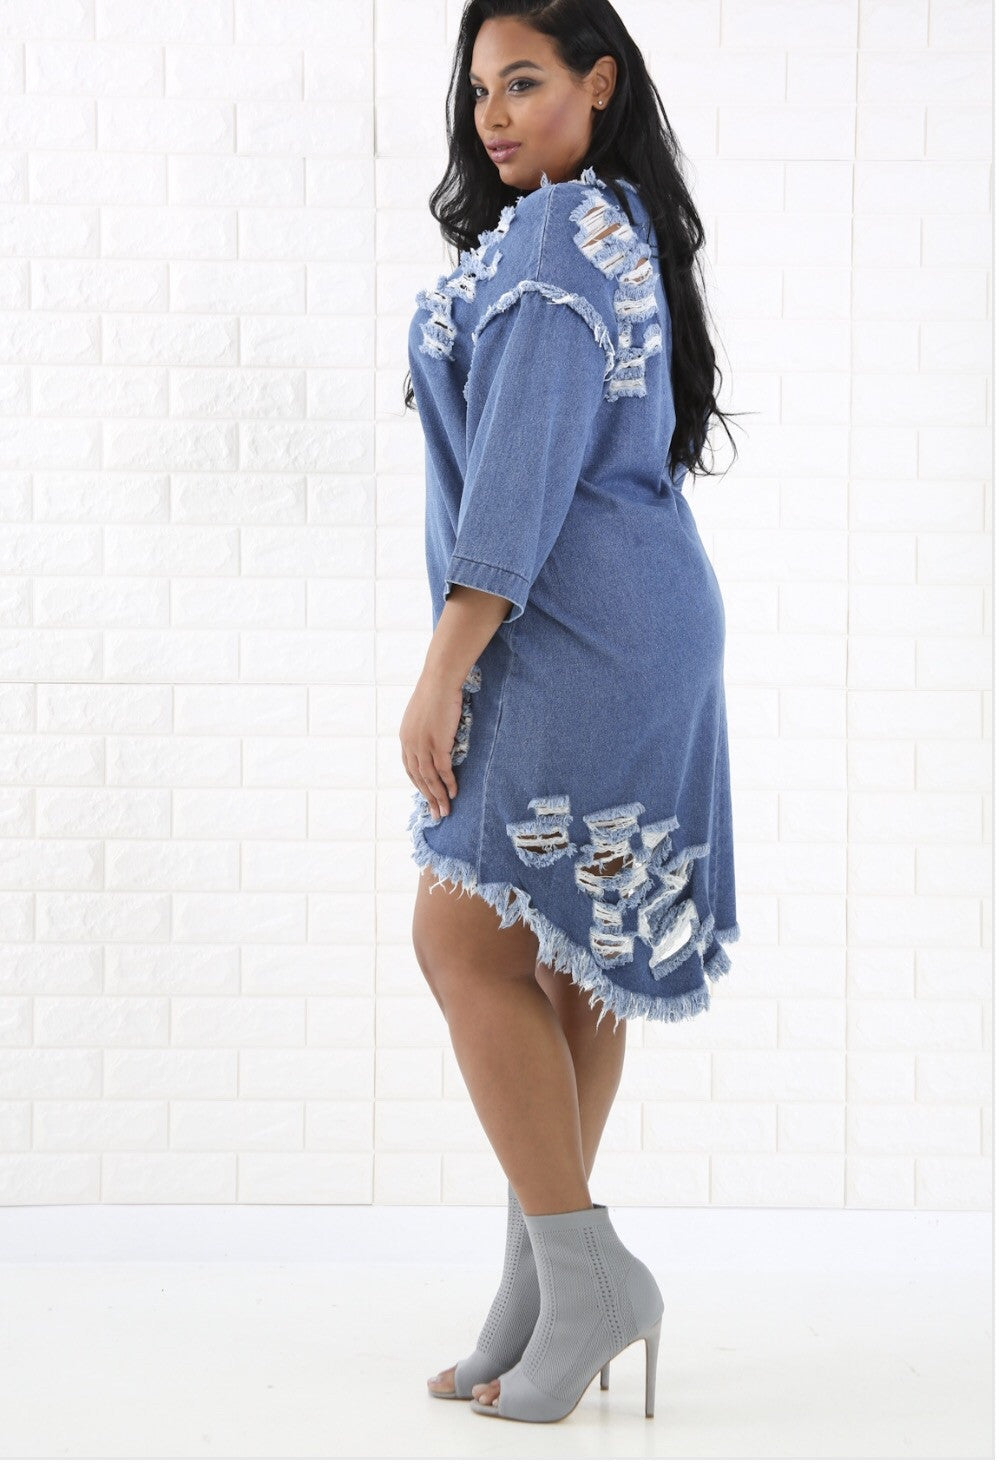 Shredded Denim Dress